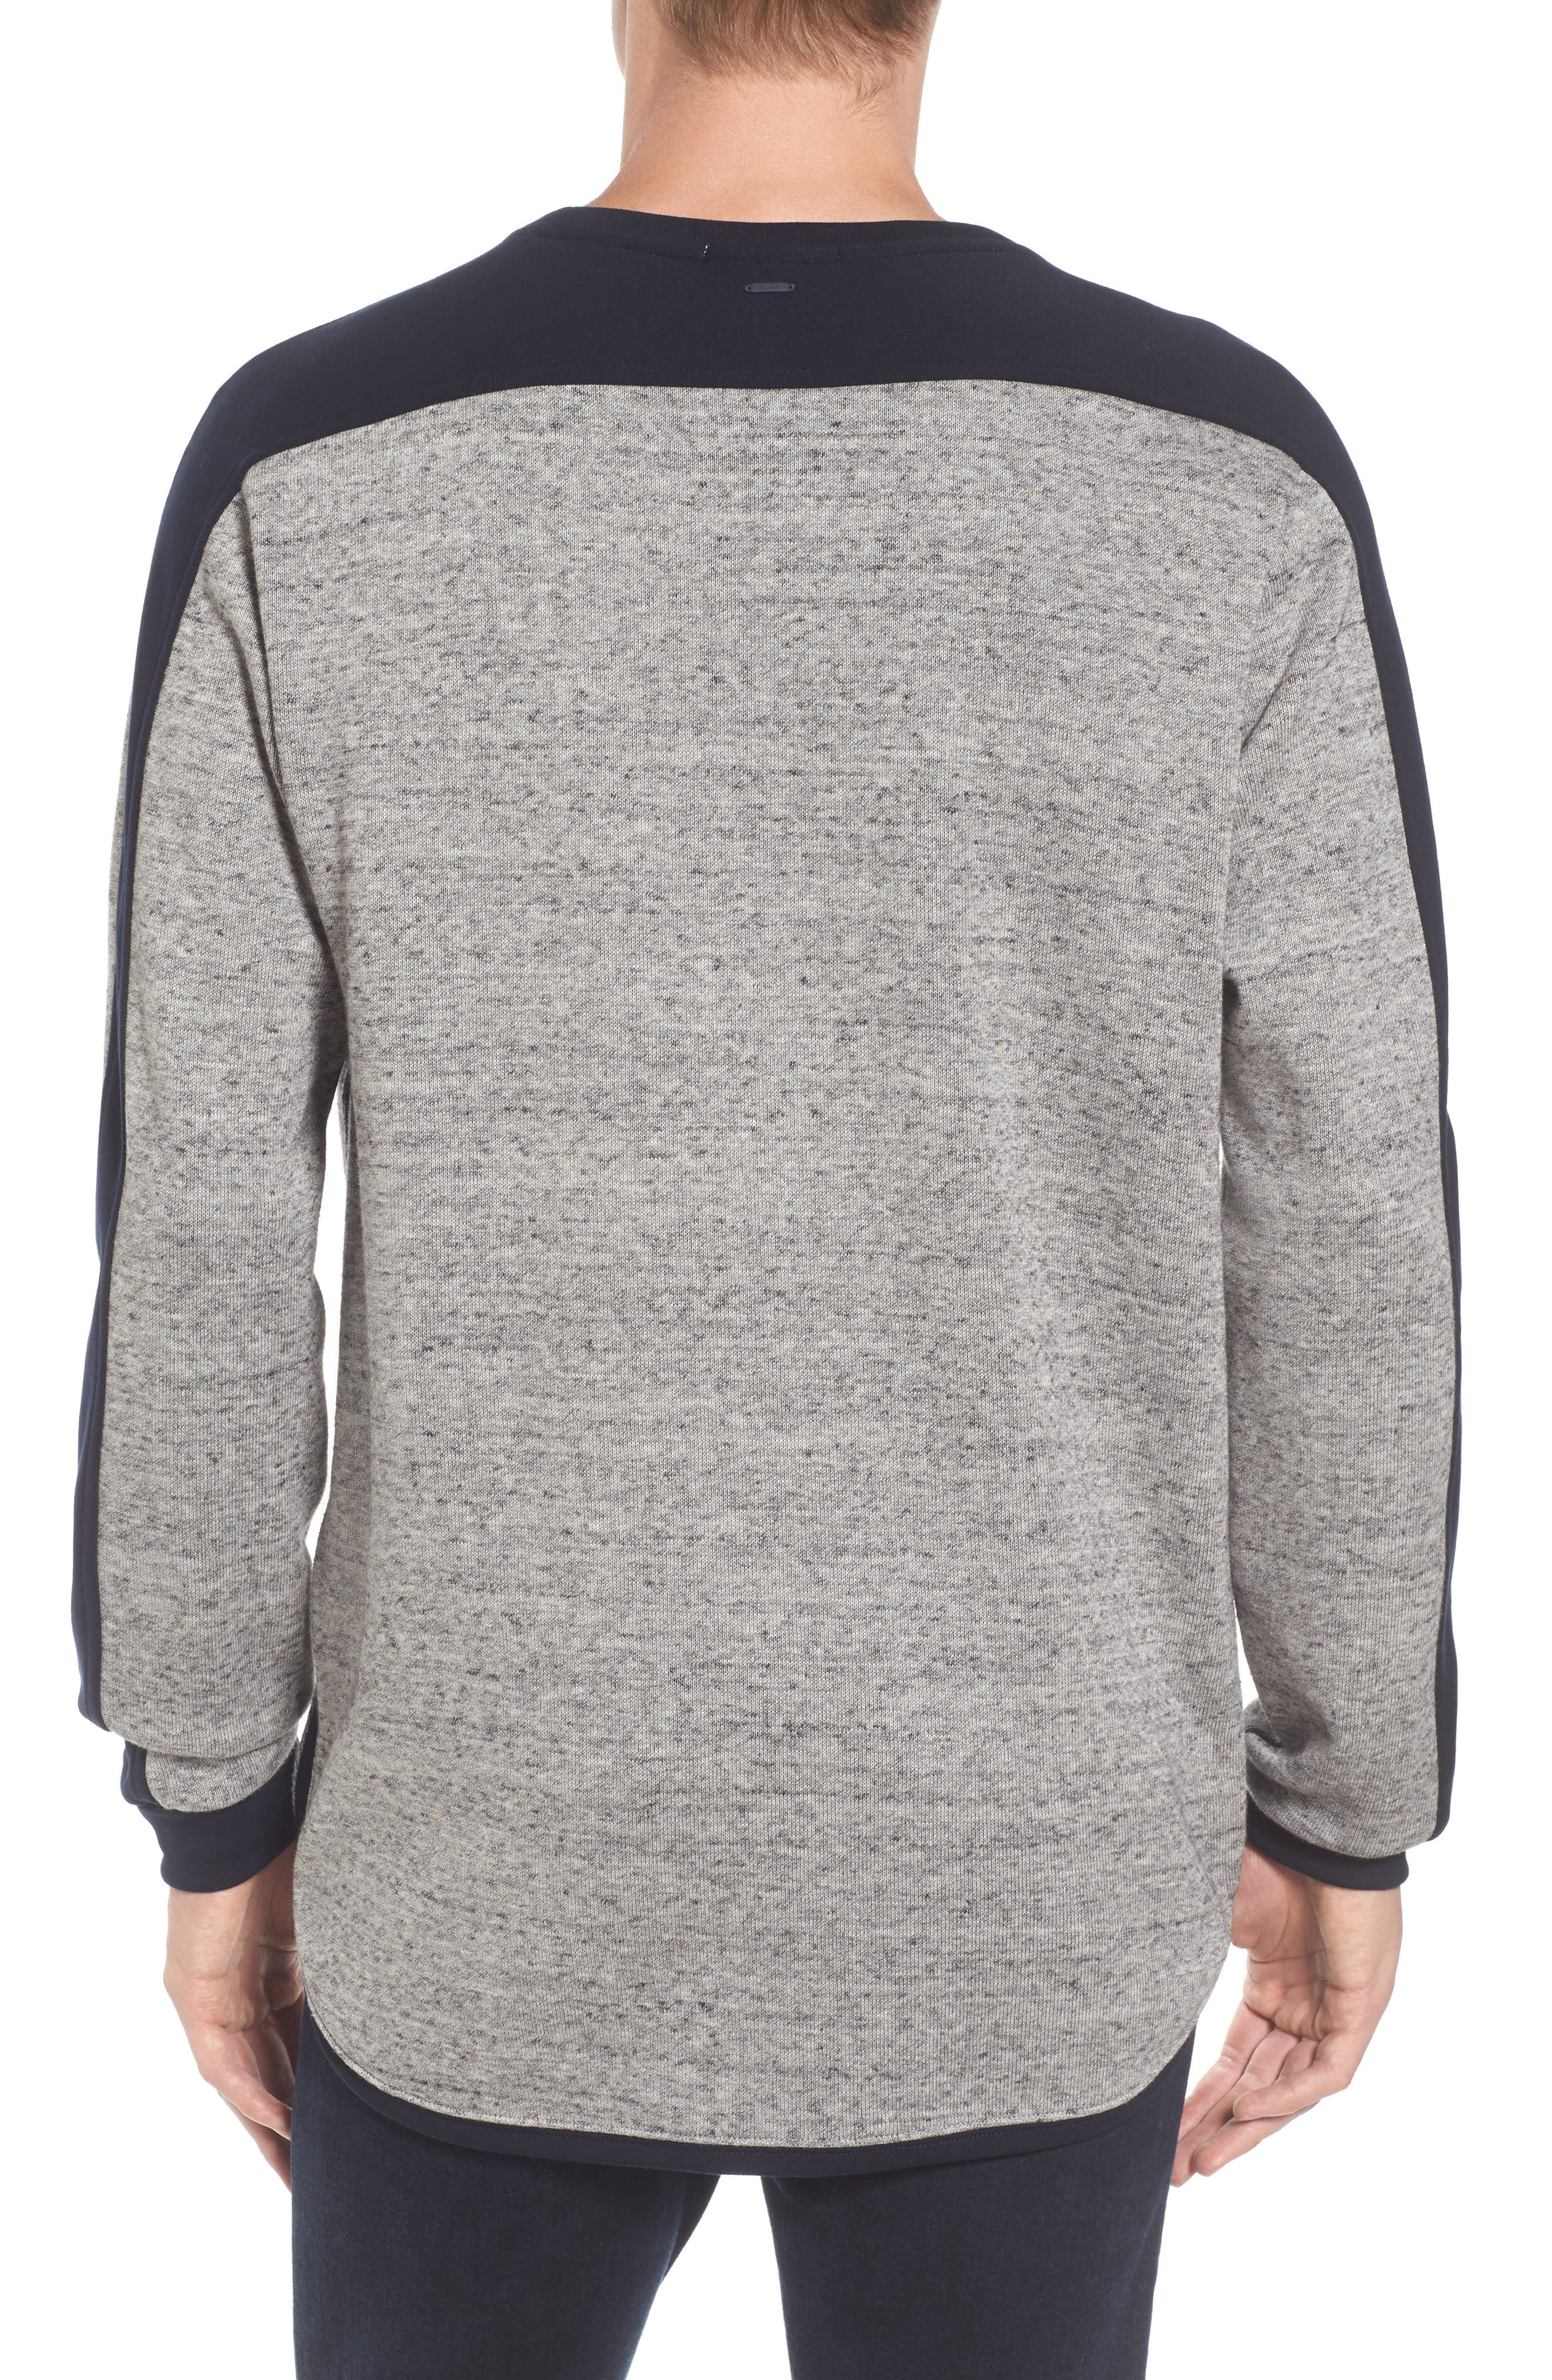 Panel Sweatshirt,                             Alternate thumbnail 2, color,                             030